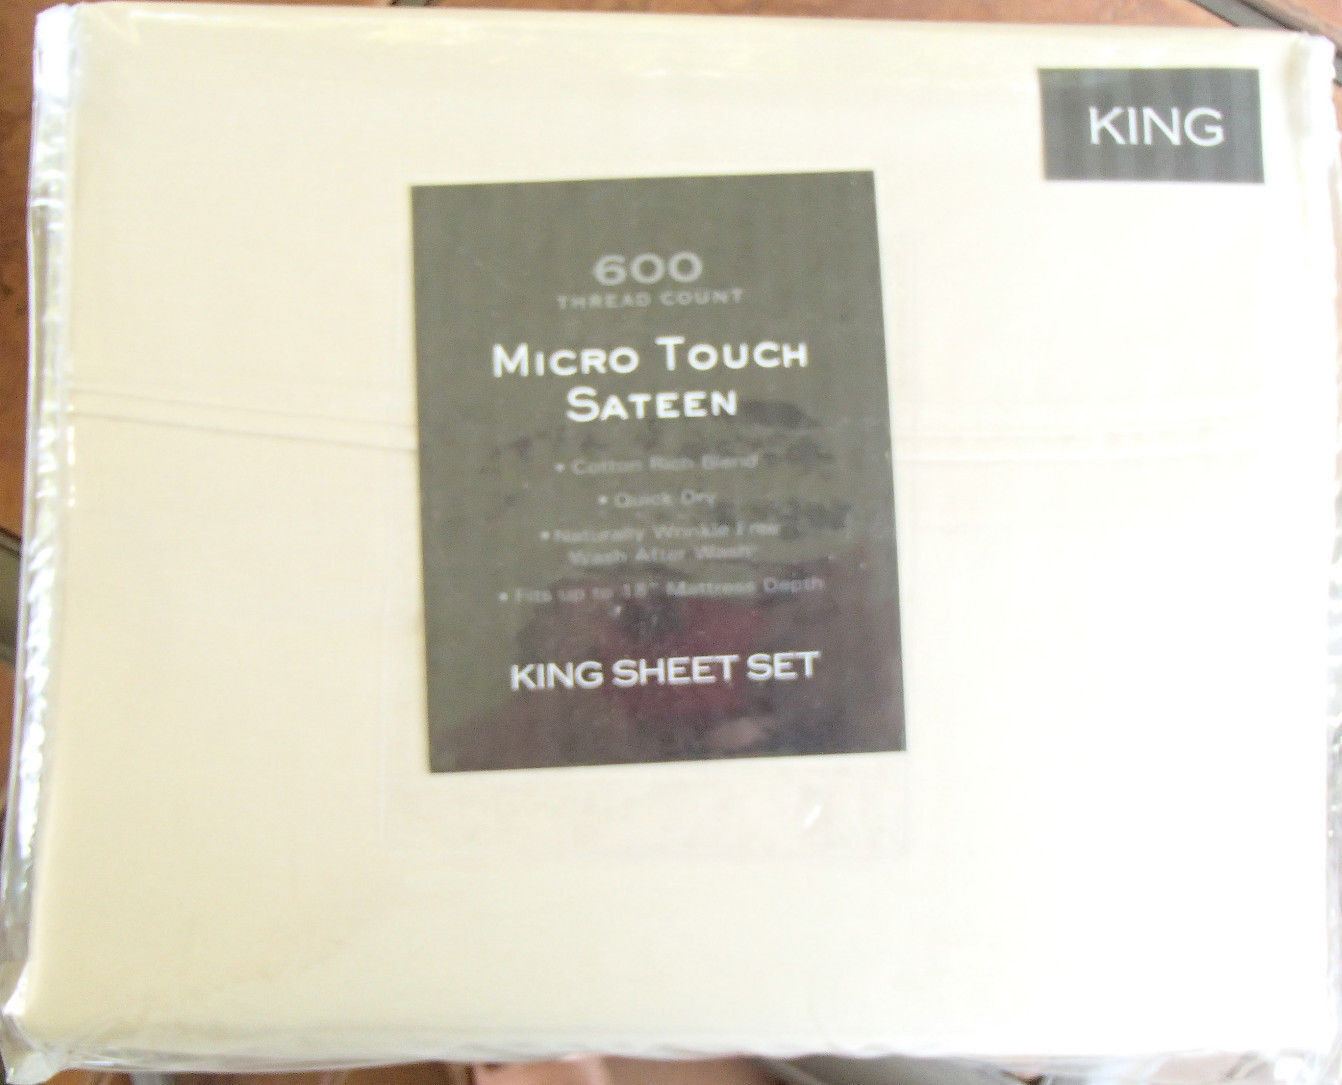 Micro Touch (MicroTouch) Sateen King Sheet Set Ivory 600 Thread Count. 18 Depth